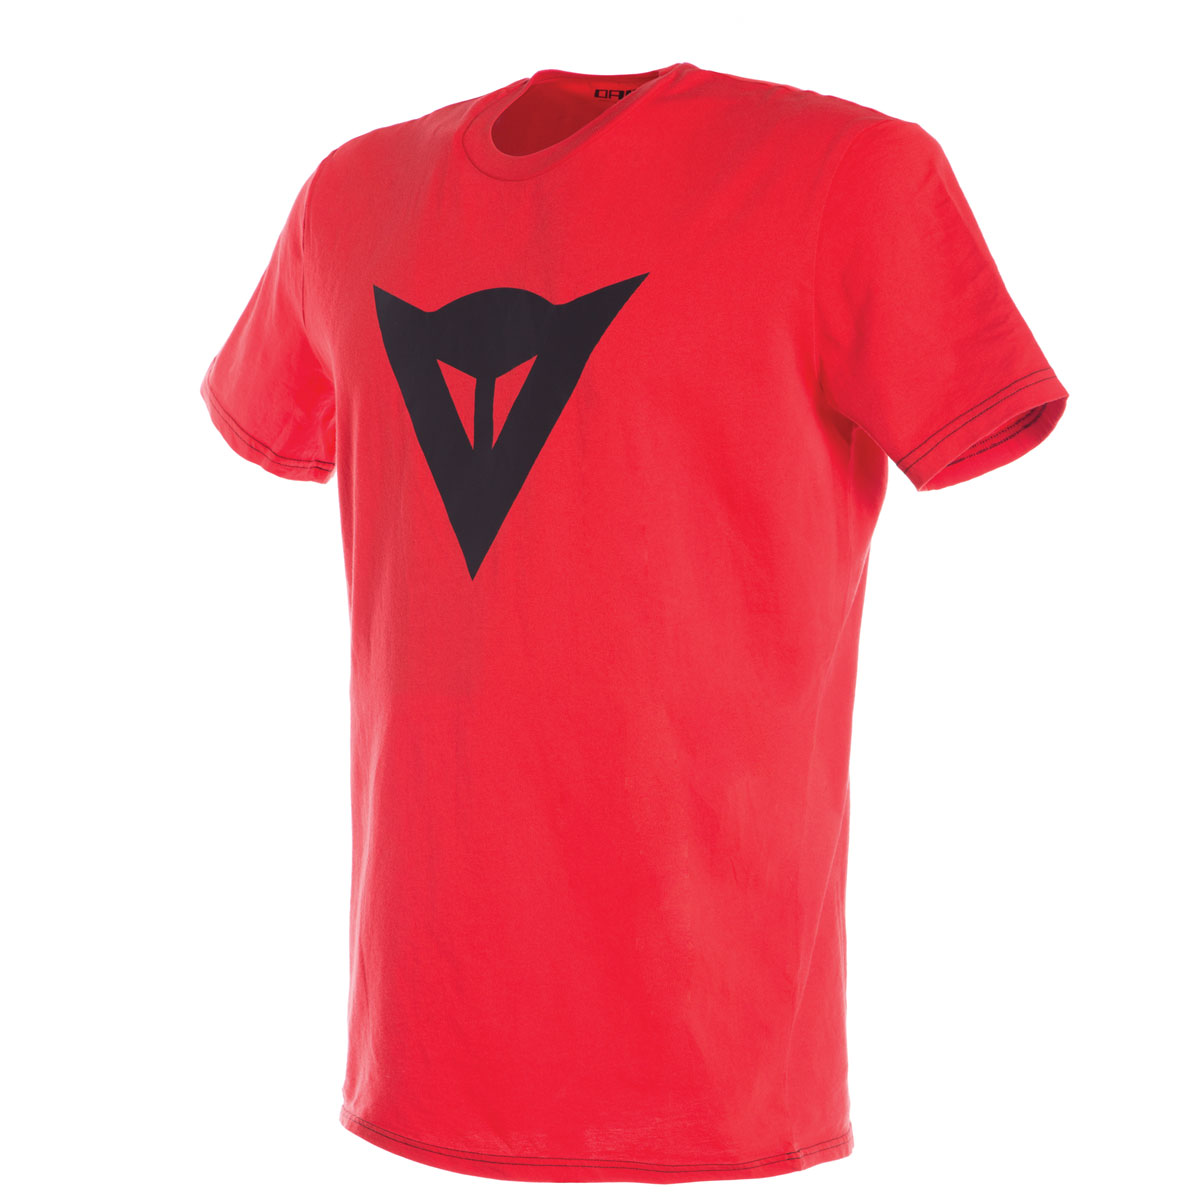 Dainese Men's Speed Demon Red T-Shirt